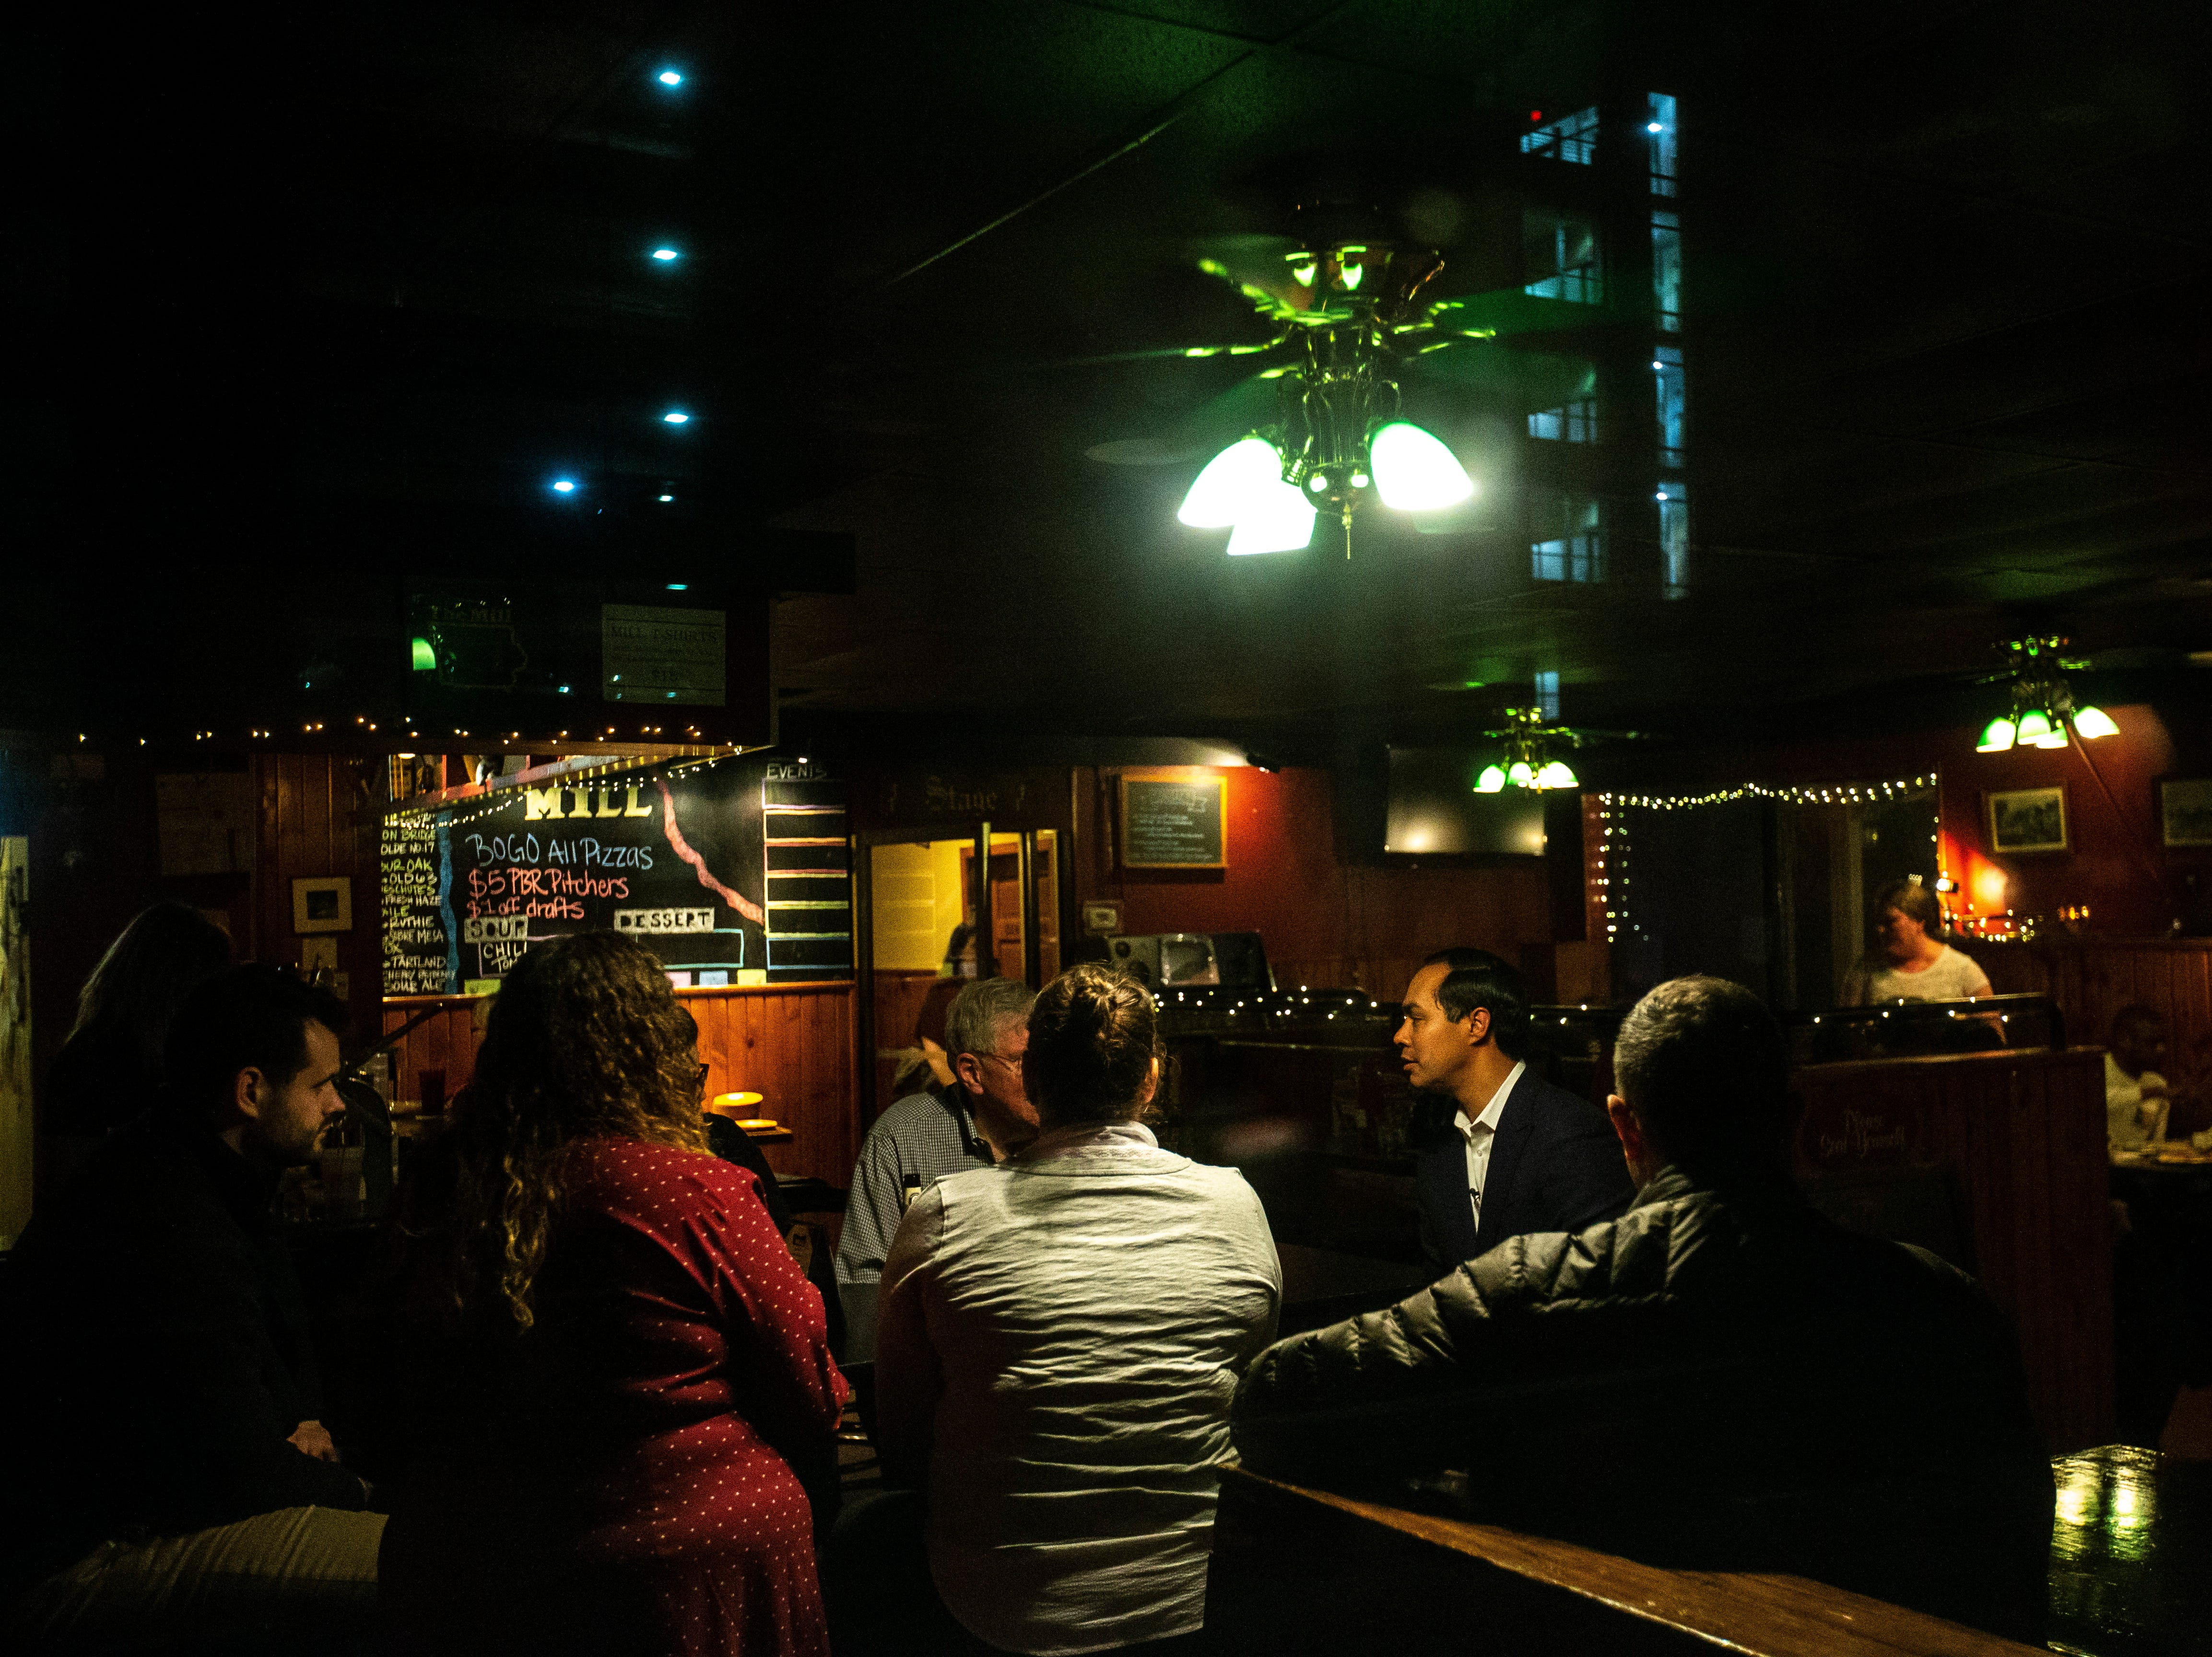 Democratic presidential candidate Julián Castro speaks with Bob Dvorsky, Sen. Zach Wahls, D-Coralville, and other locals after a Lotería game night hosted by LULAC Council 308 on Sunday, March 31, 2019, at The Mill in downtown Iowa City, Iowa.